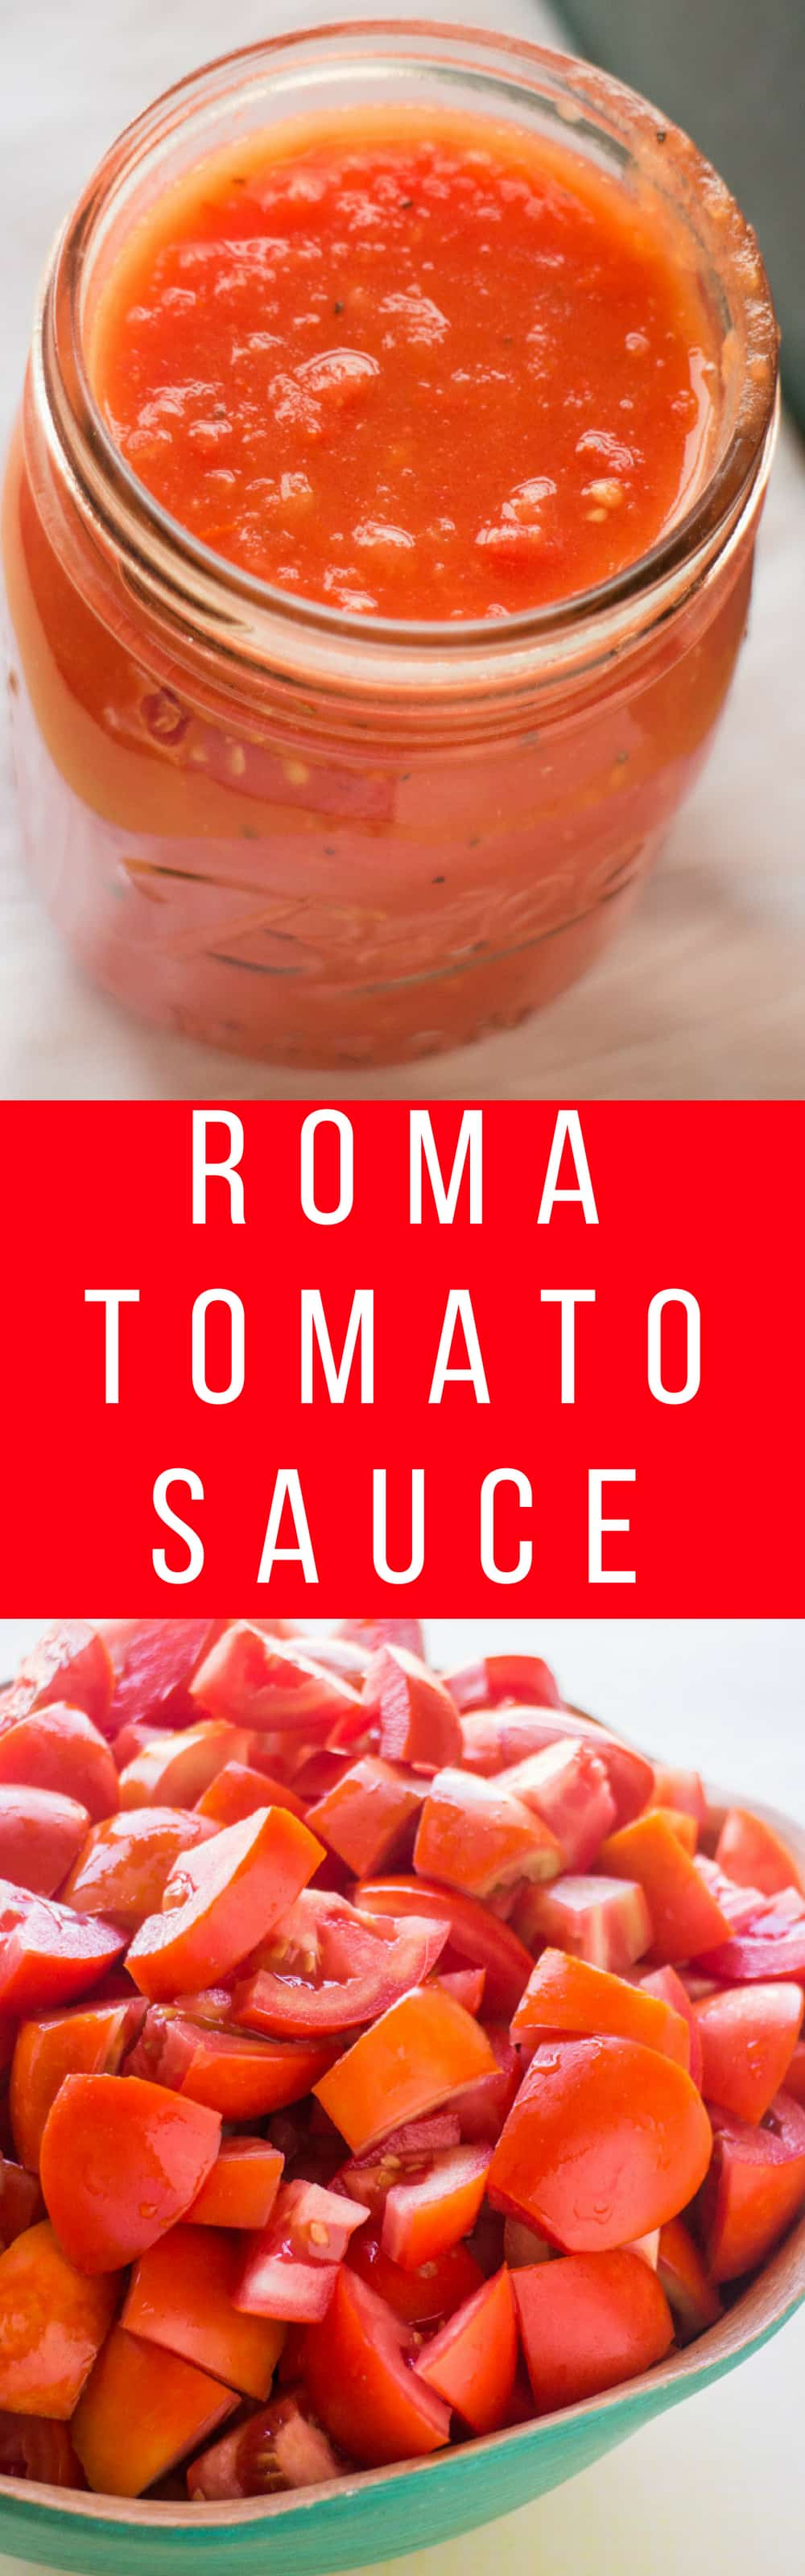 Roma Tomato Sauce recipe that requires no peeling or blanching! This is a easy creamy sauce that's perfect for growing garden tomatoes! Serve on pasta, or use later by canning or freezing.